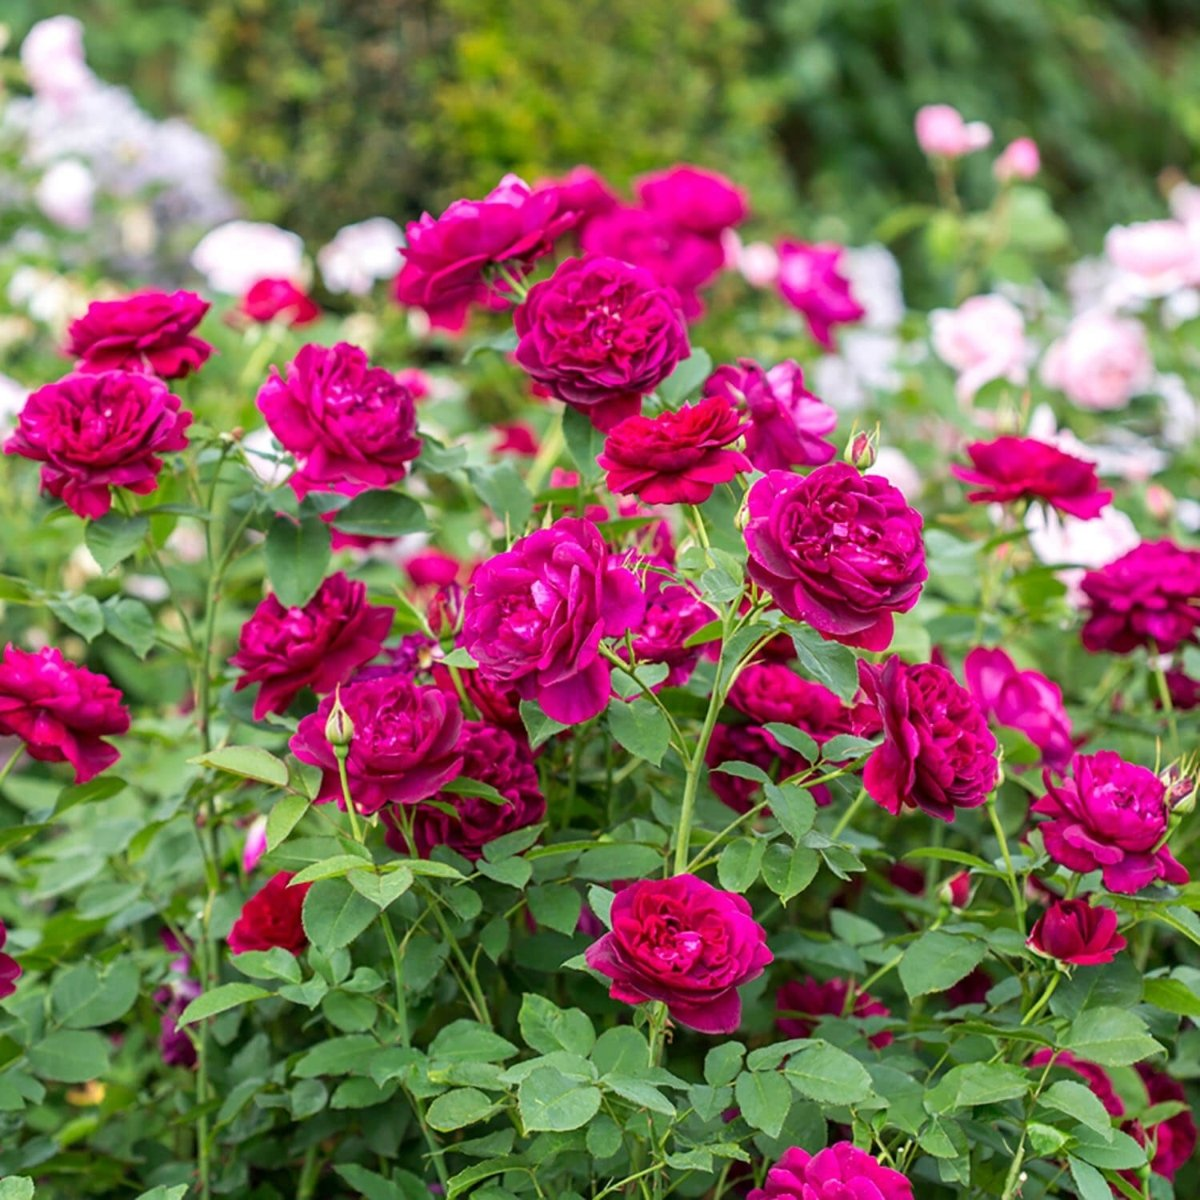 Rosa-Darcey-Bussell-1